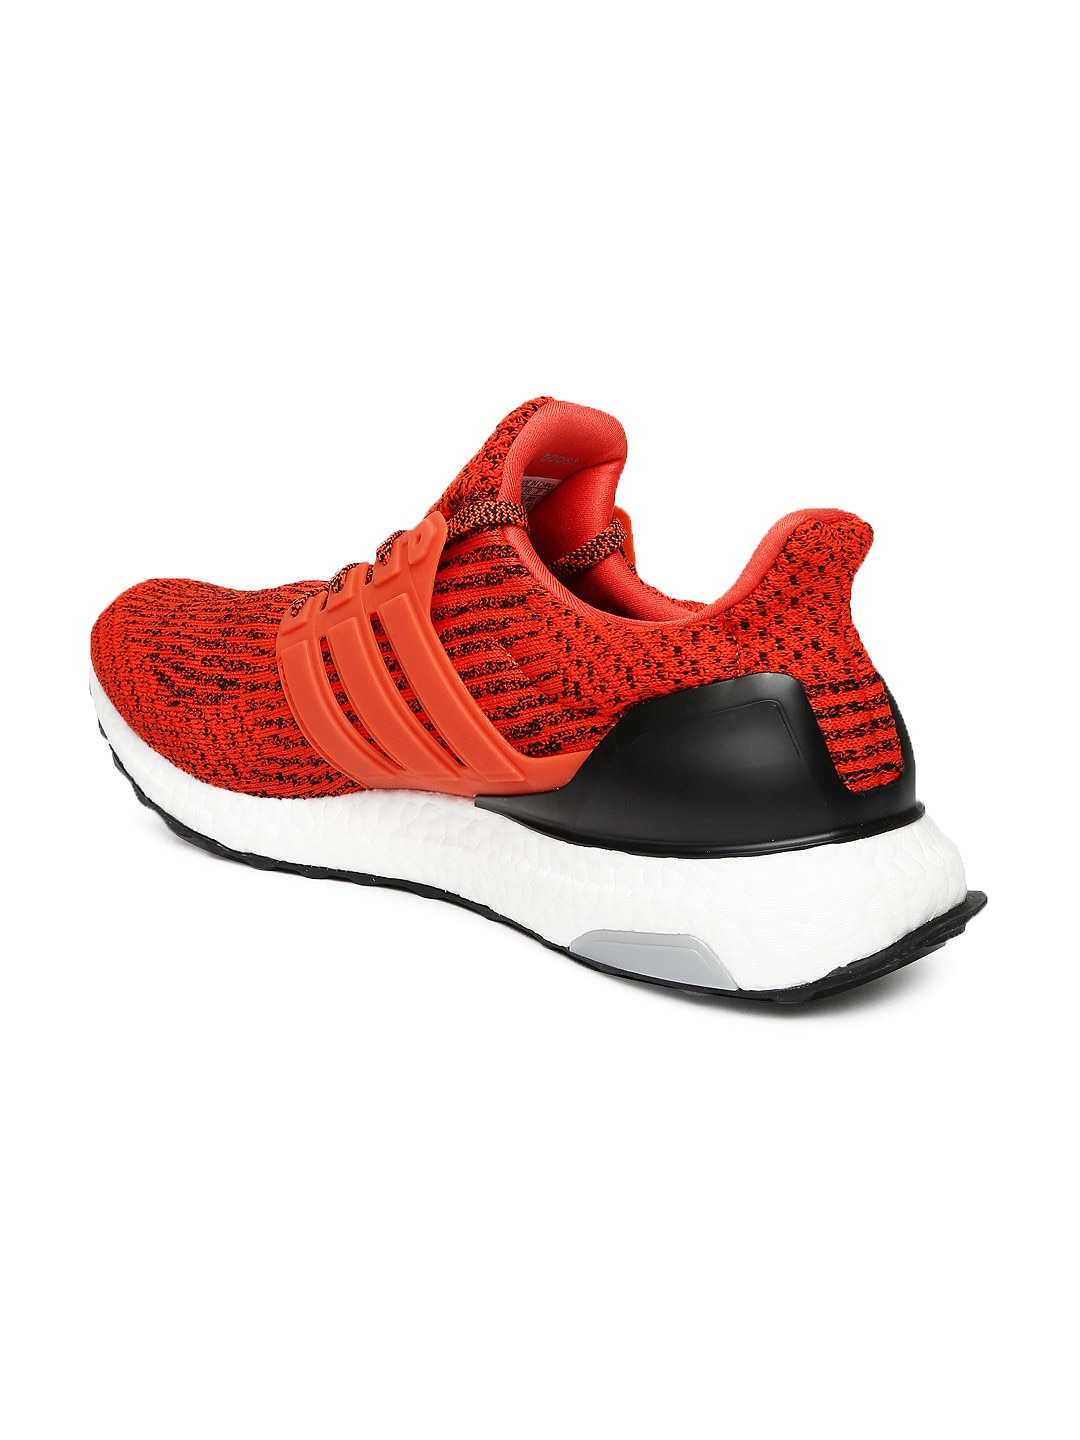 Adidas Shoes 2017 Model Price